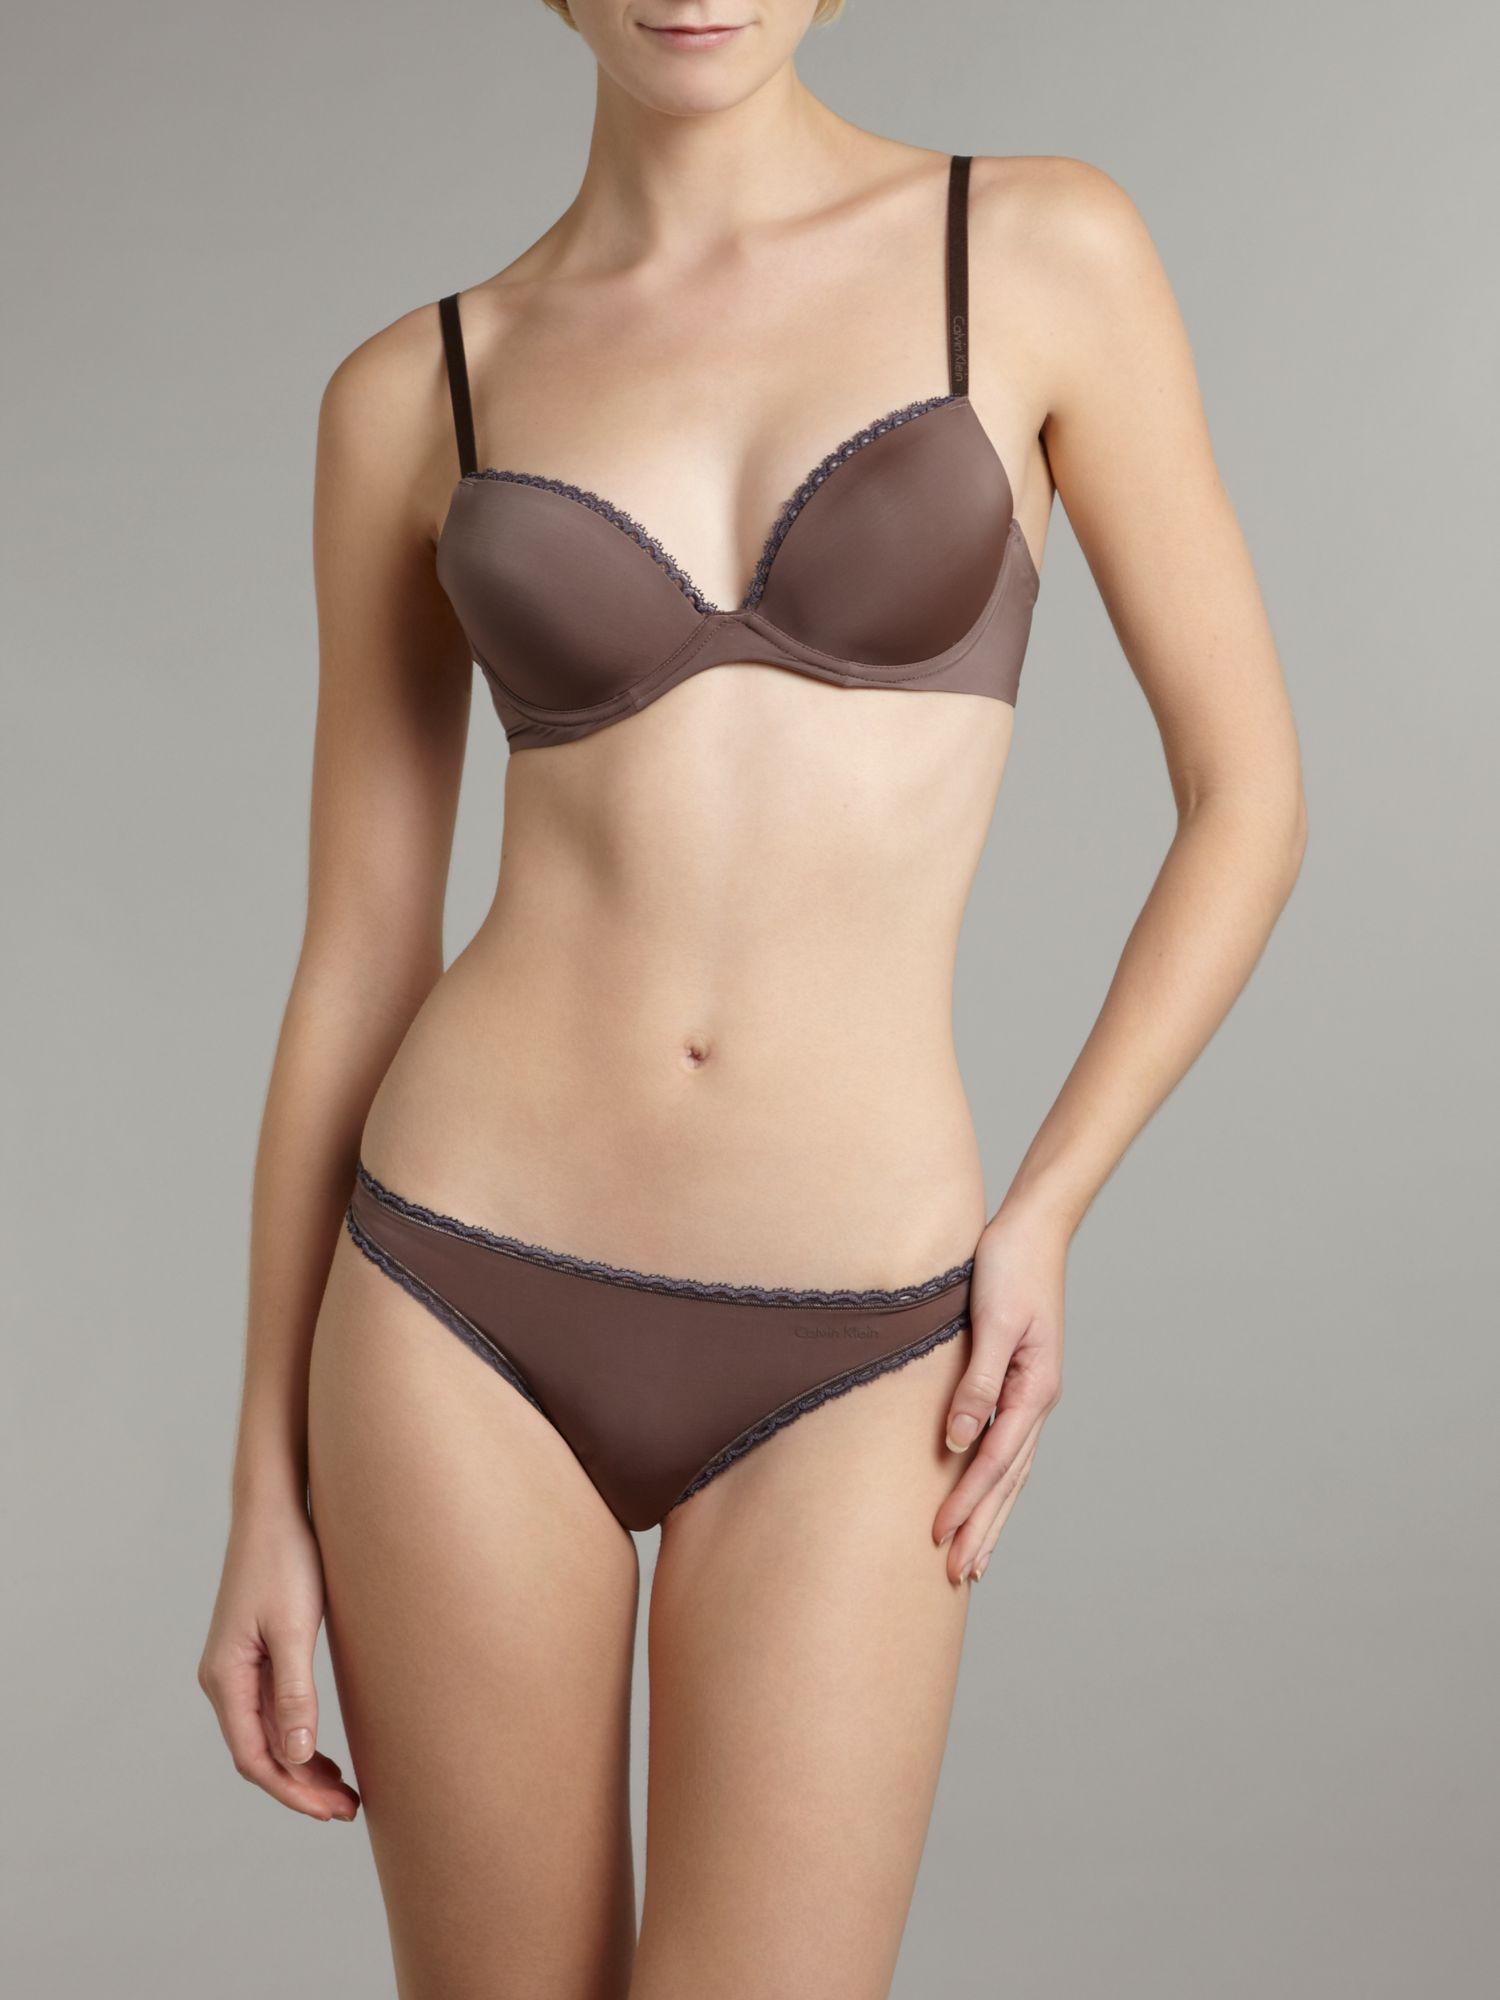 Seductive comfort customised lift bra